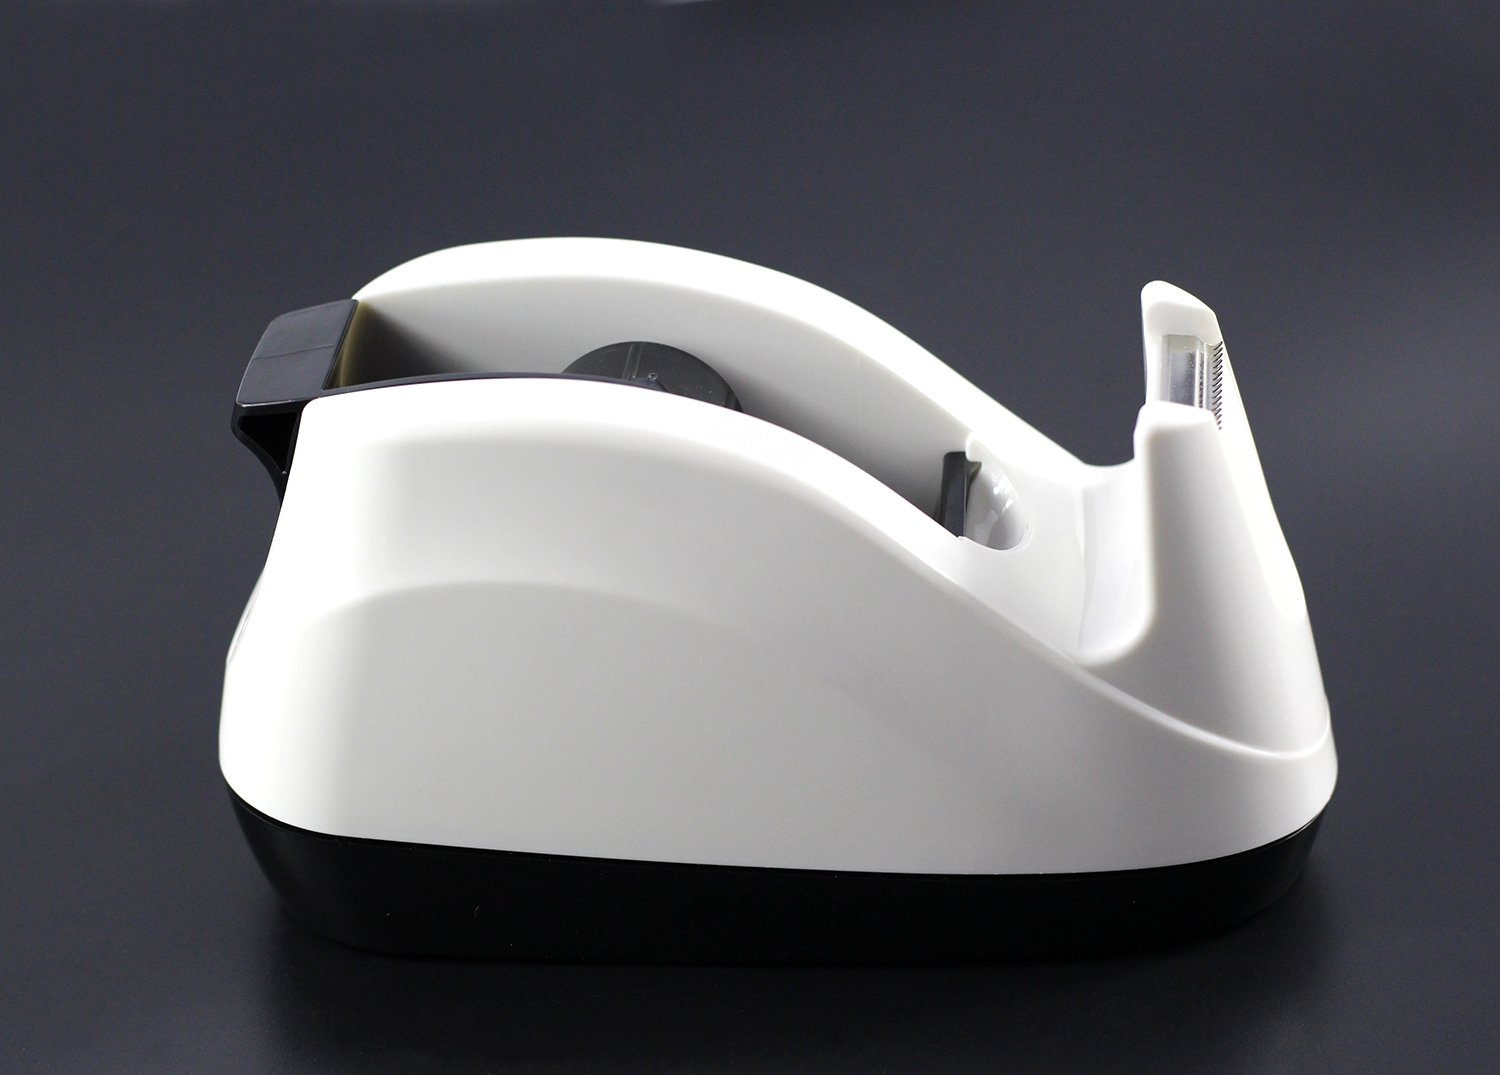 BeeChamp Heavy Base Nonskid Desk Tape Dispenser One-hand Dispensing (White) BC-TD